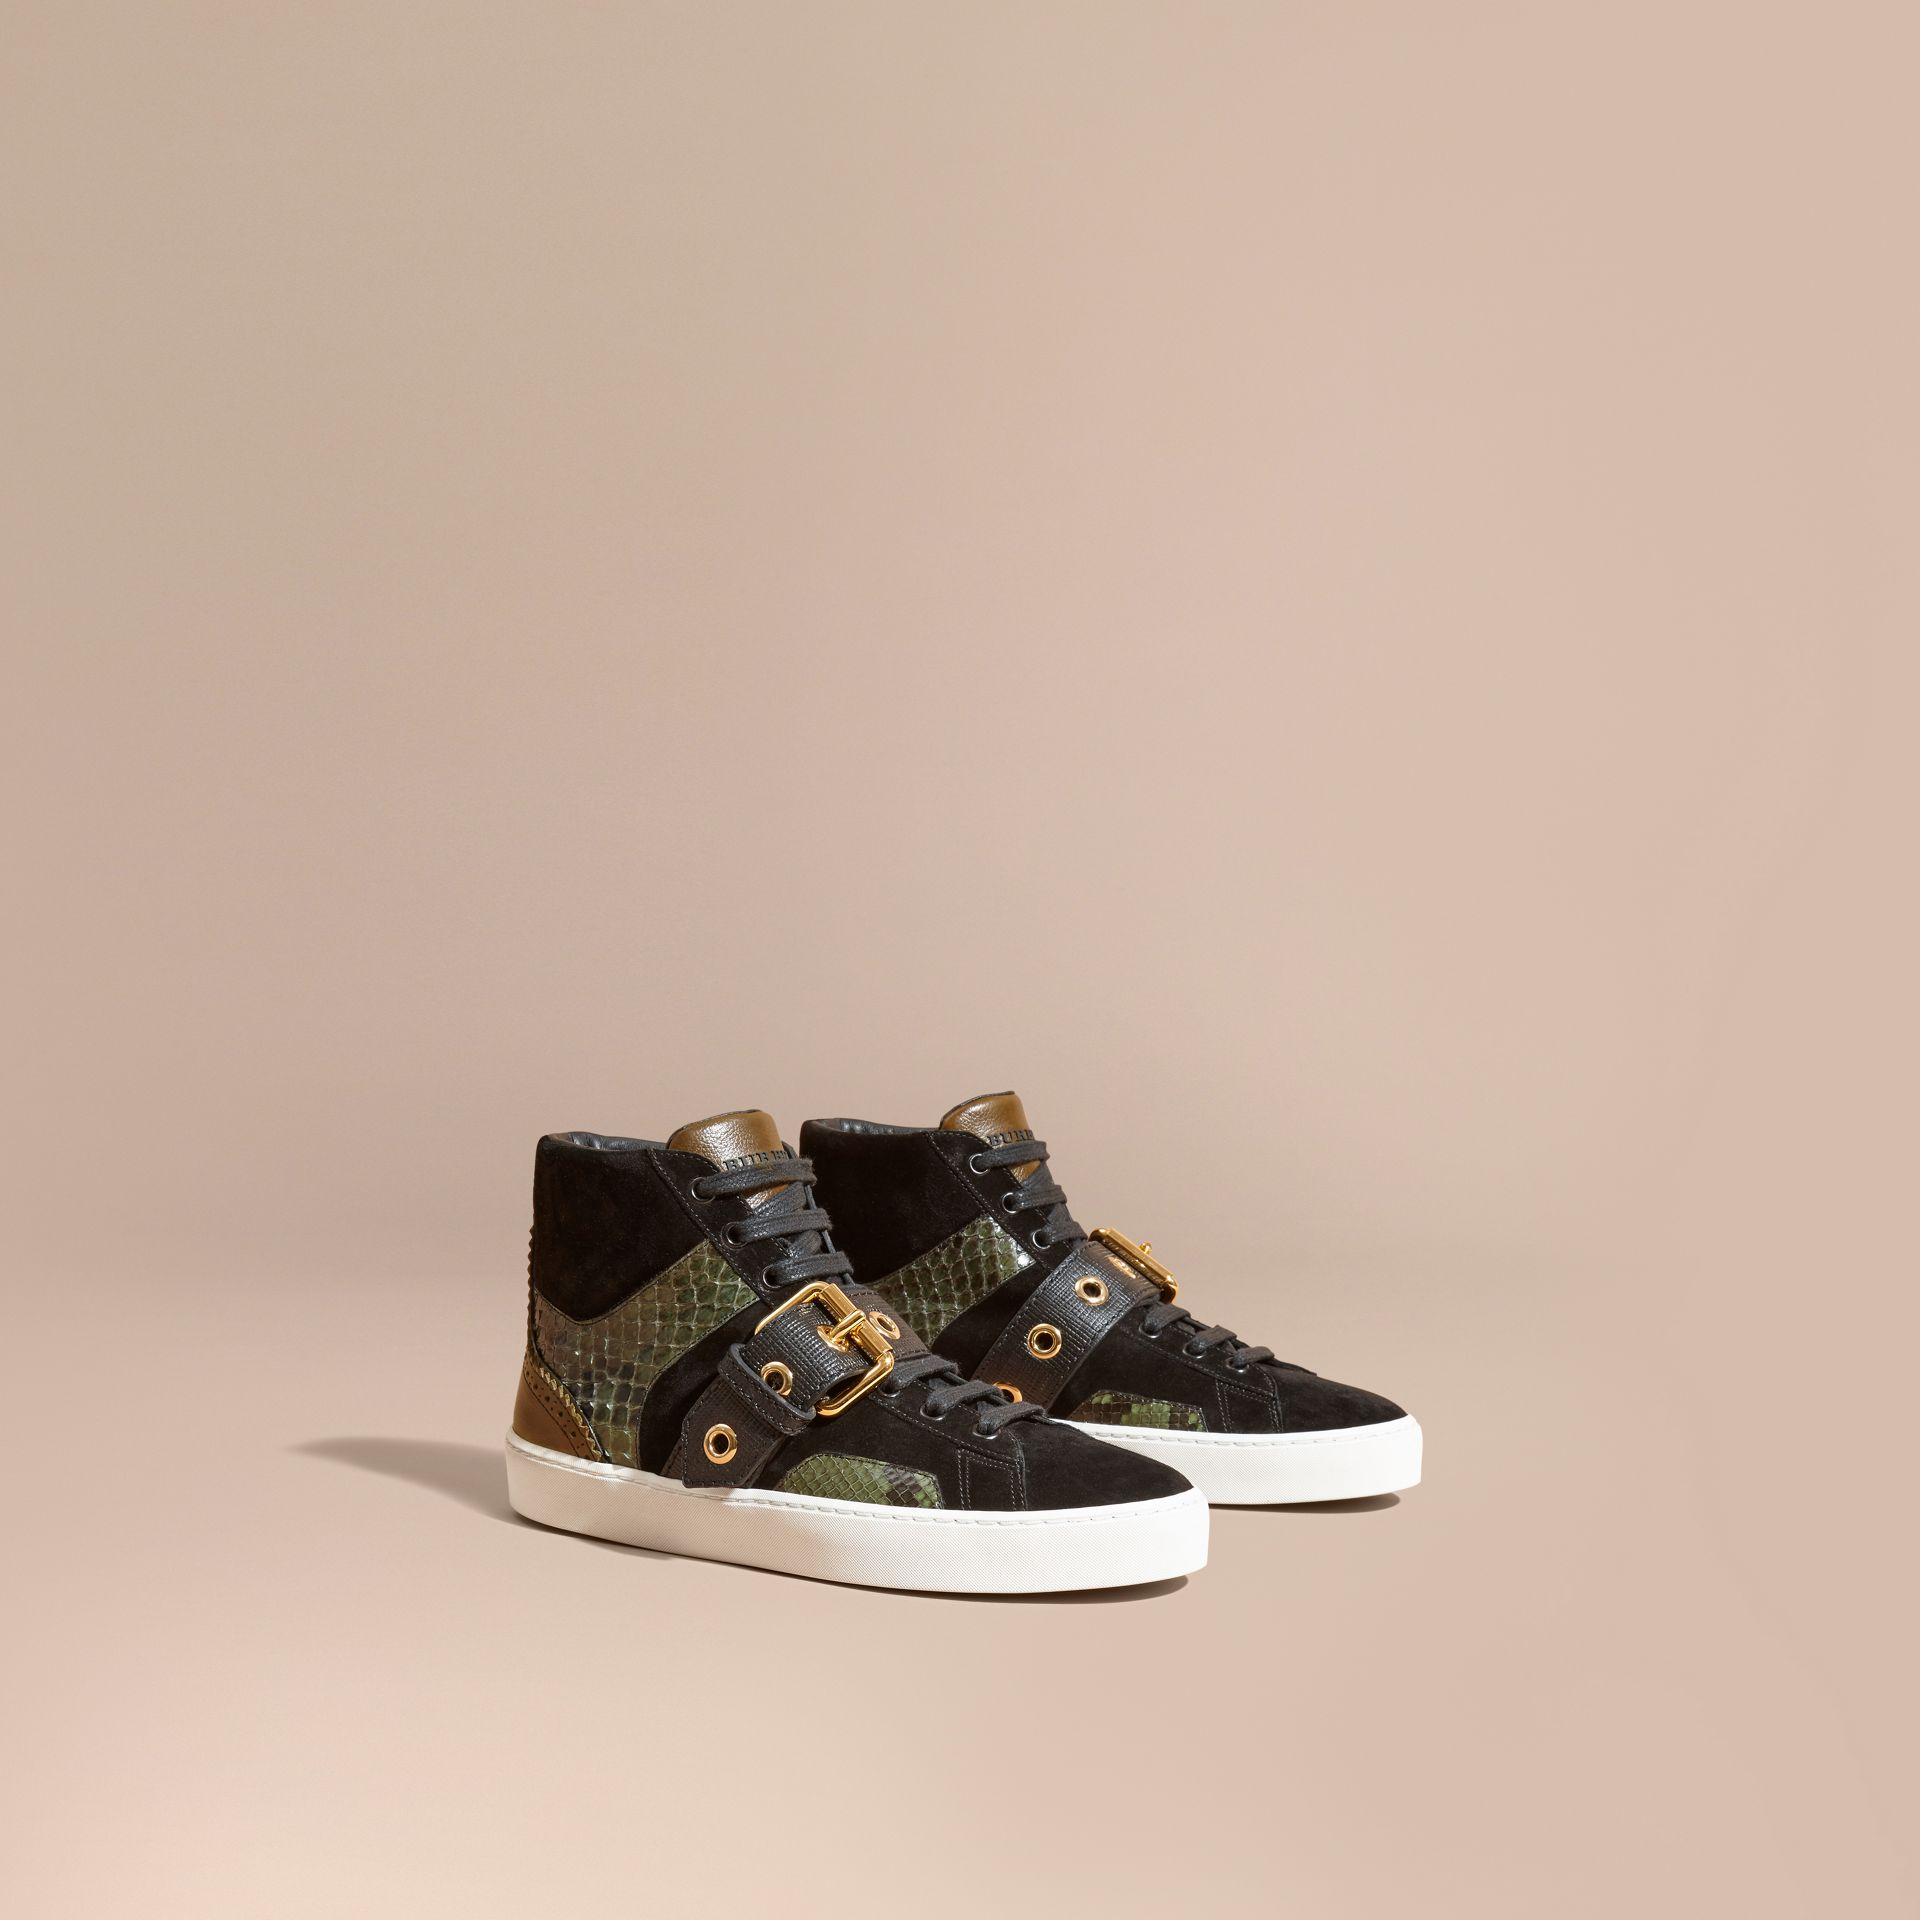 Military olive Buckle Detail Leather and Snakeskin High-top Trainers Military Olive - gallery image 1